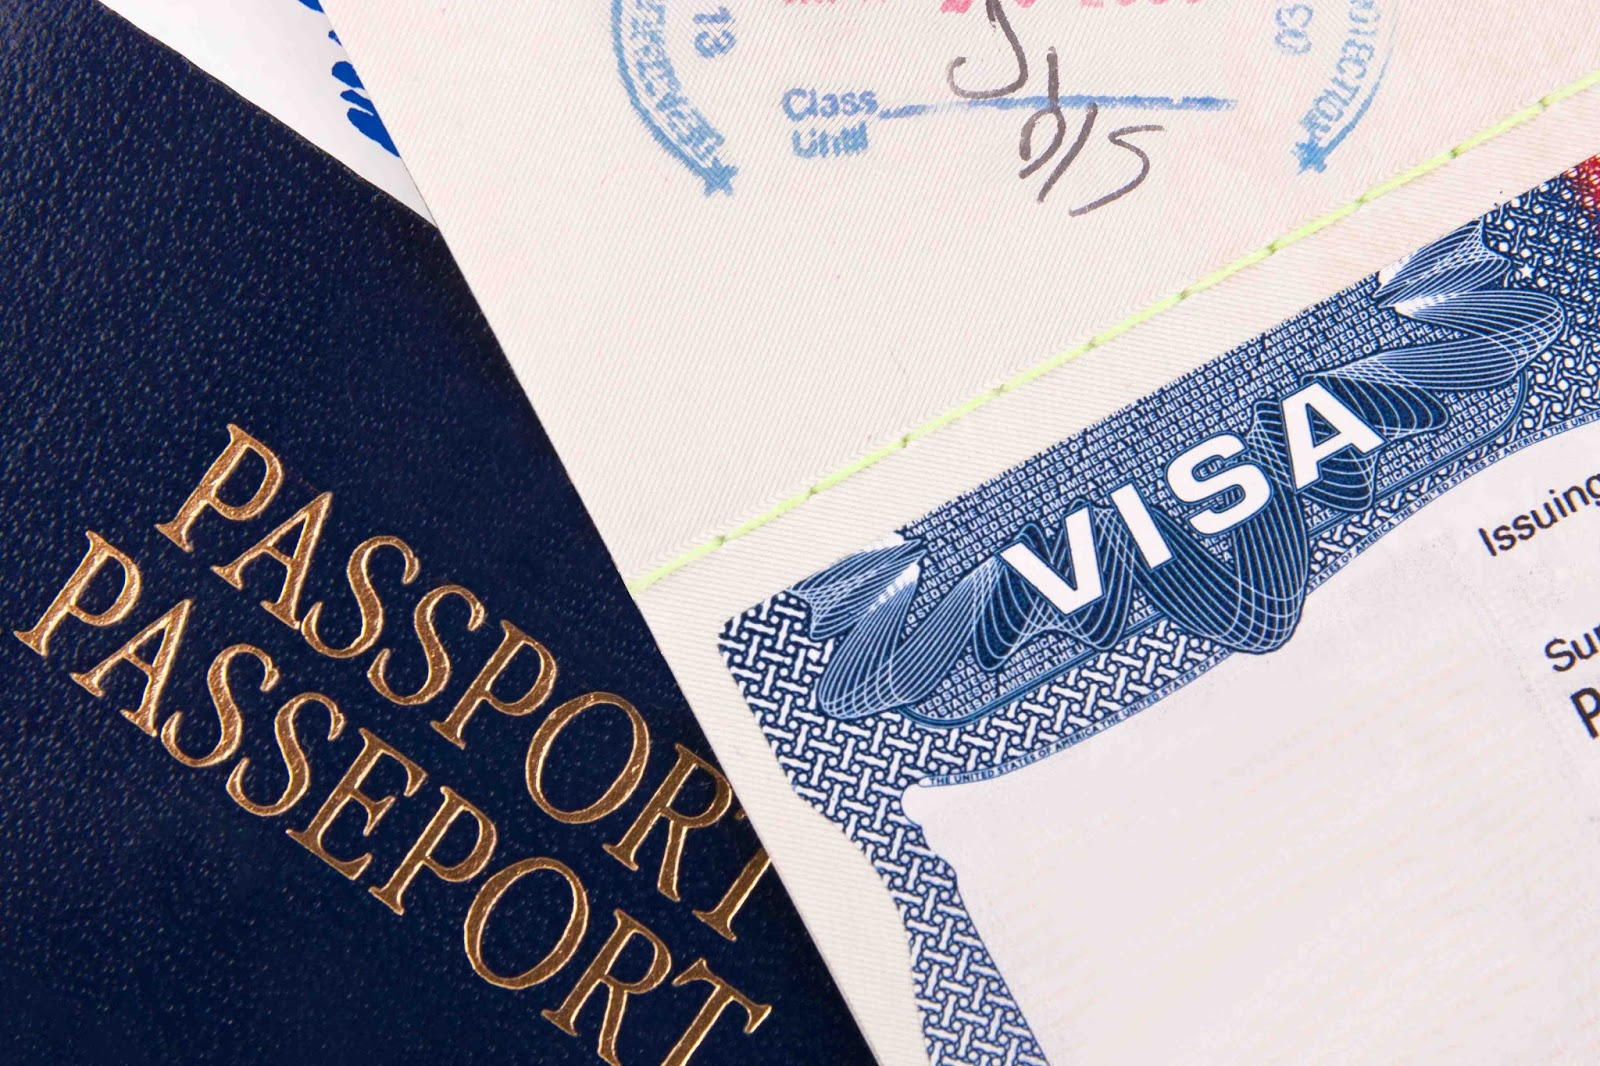 Image result for Countries visa